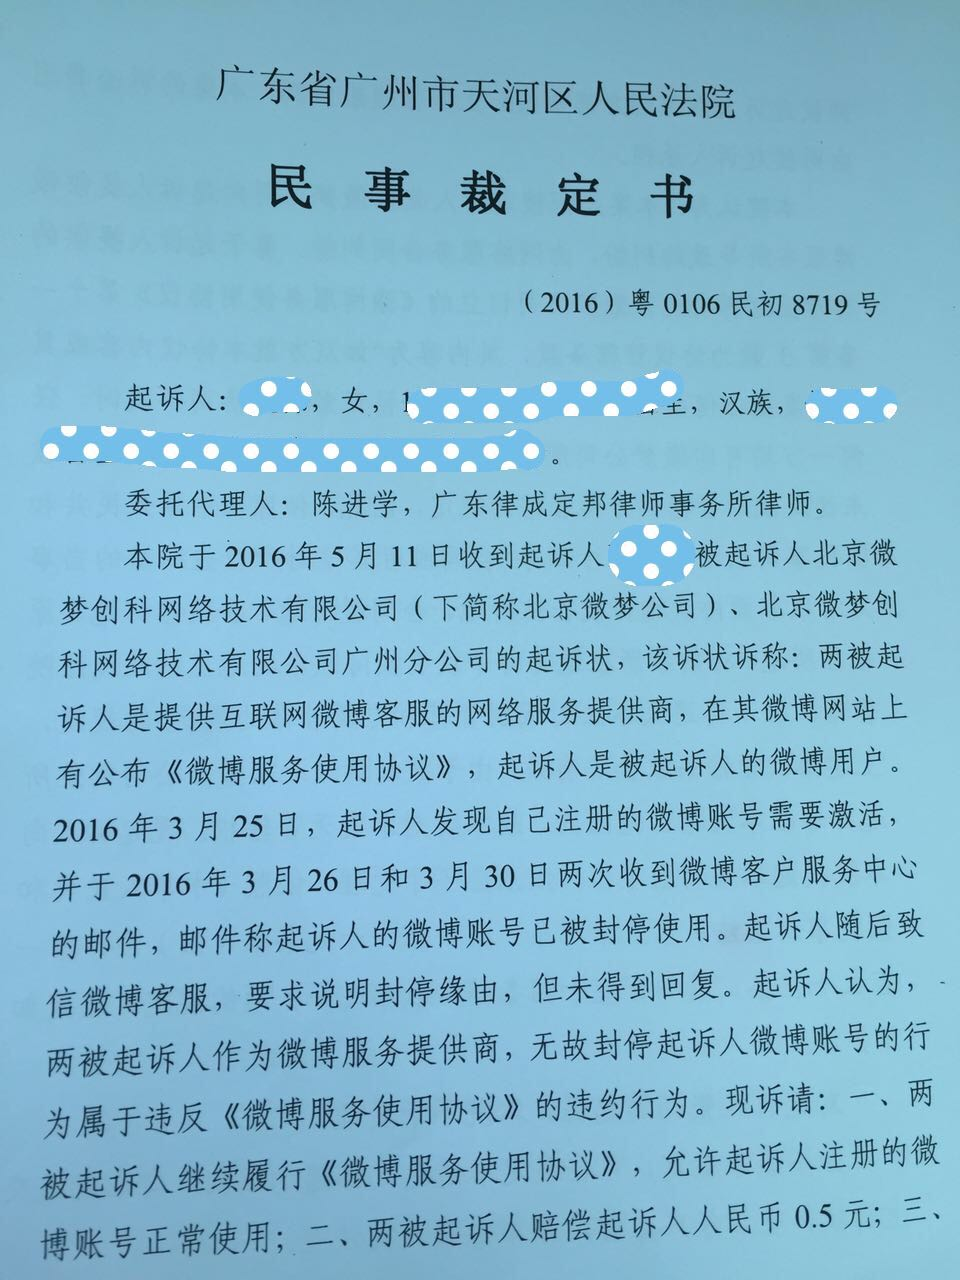 Civil ruling by Guangzhou Tianhe District People's Court (page 1)